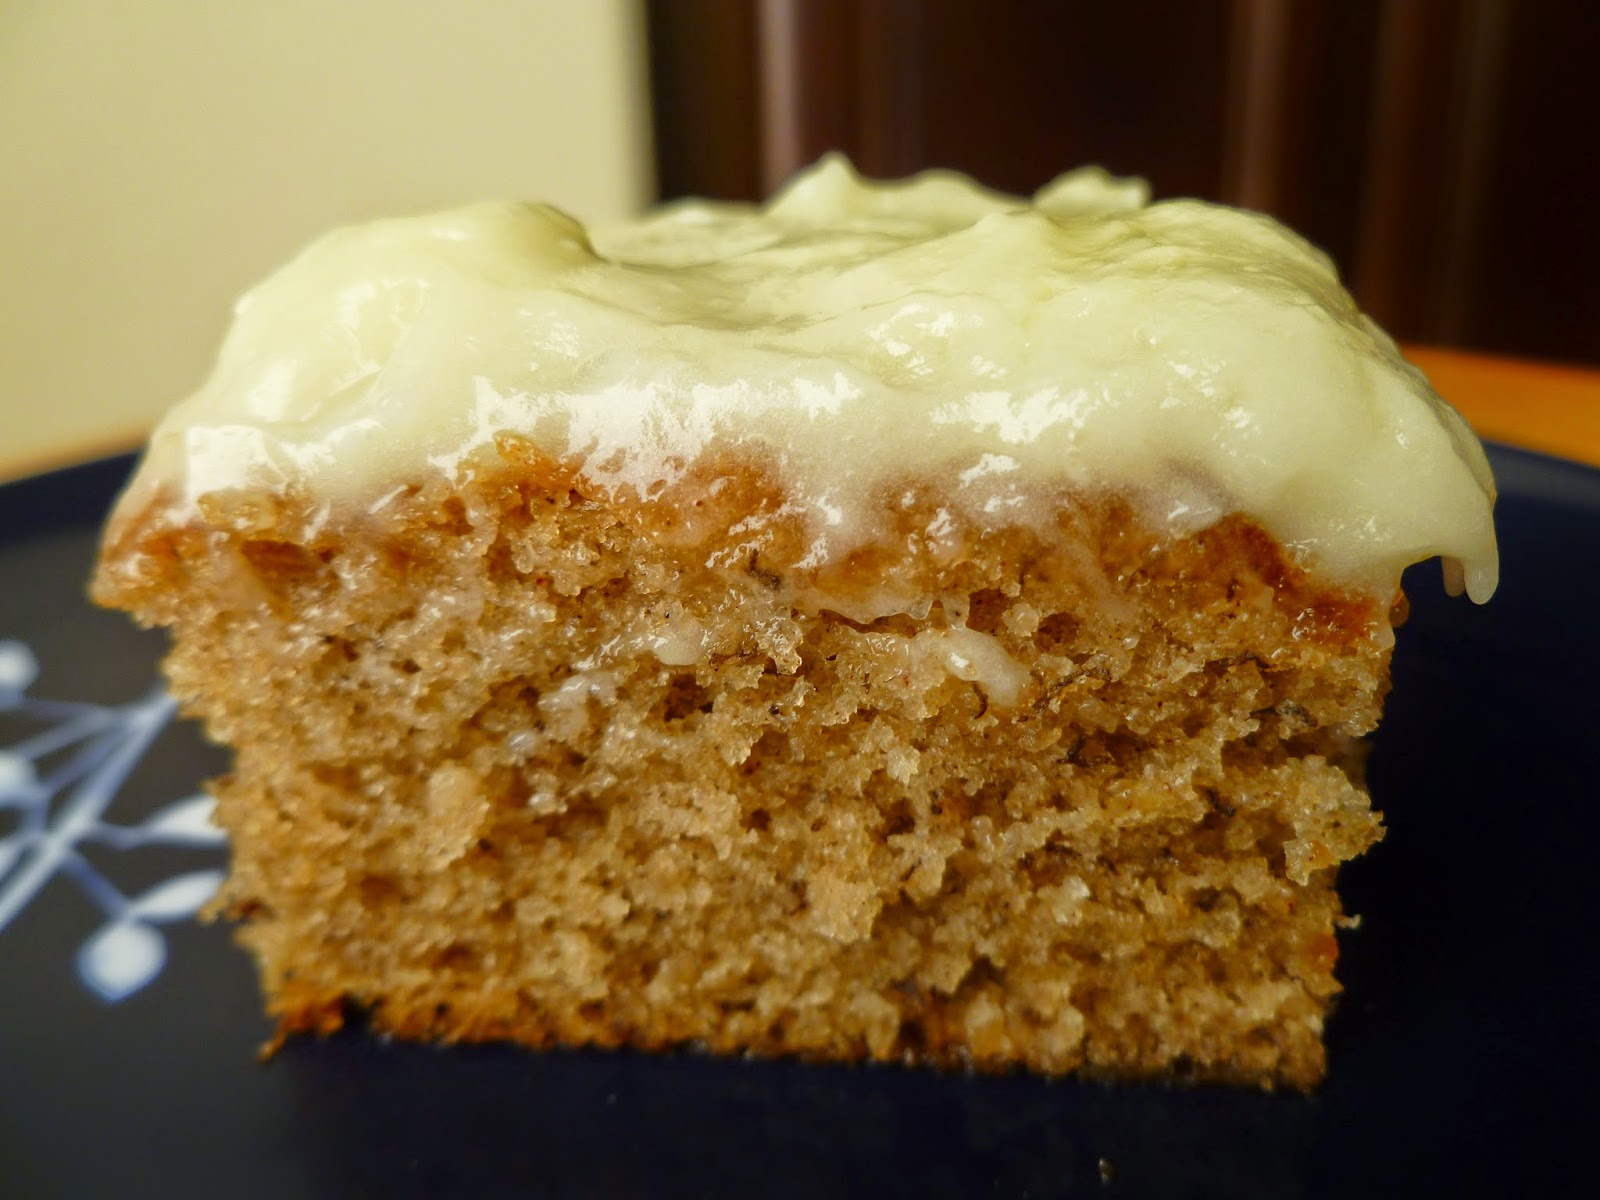 The Pastry Chef's Baking: Banana Sheet Cake with Cream Cheese Frosting ...